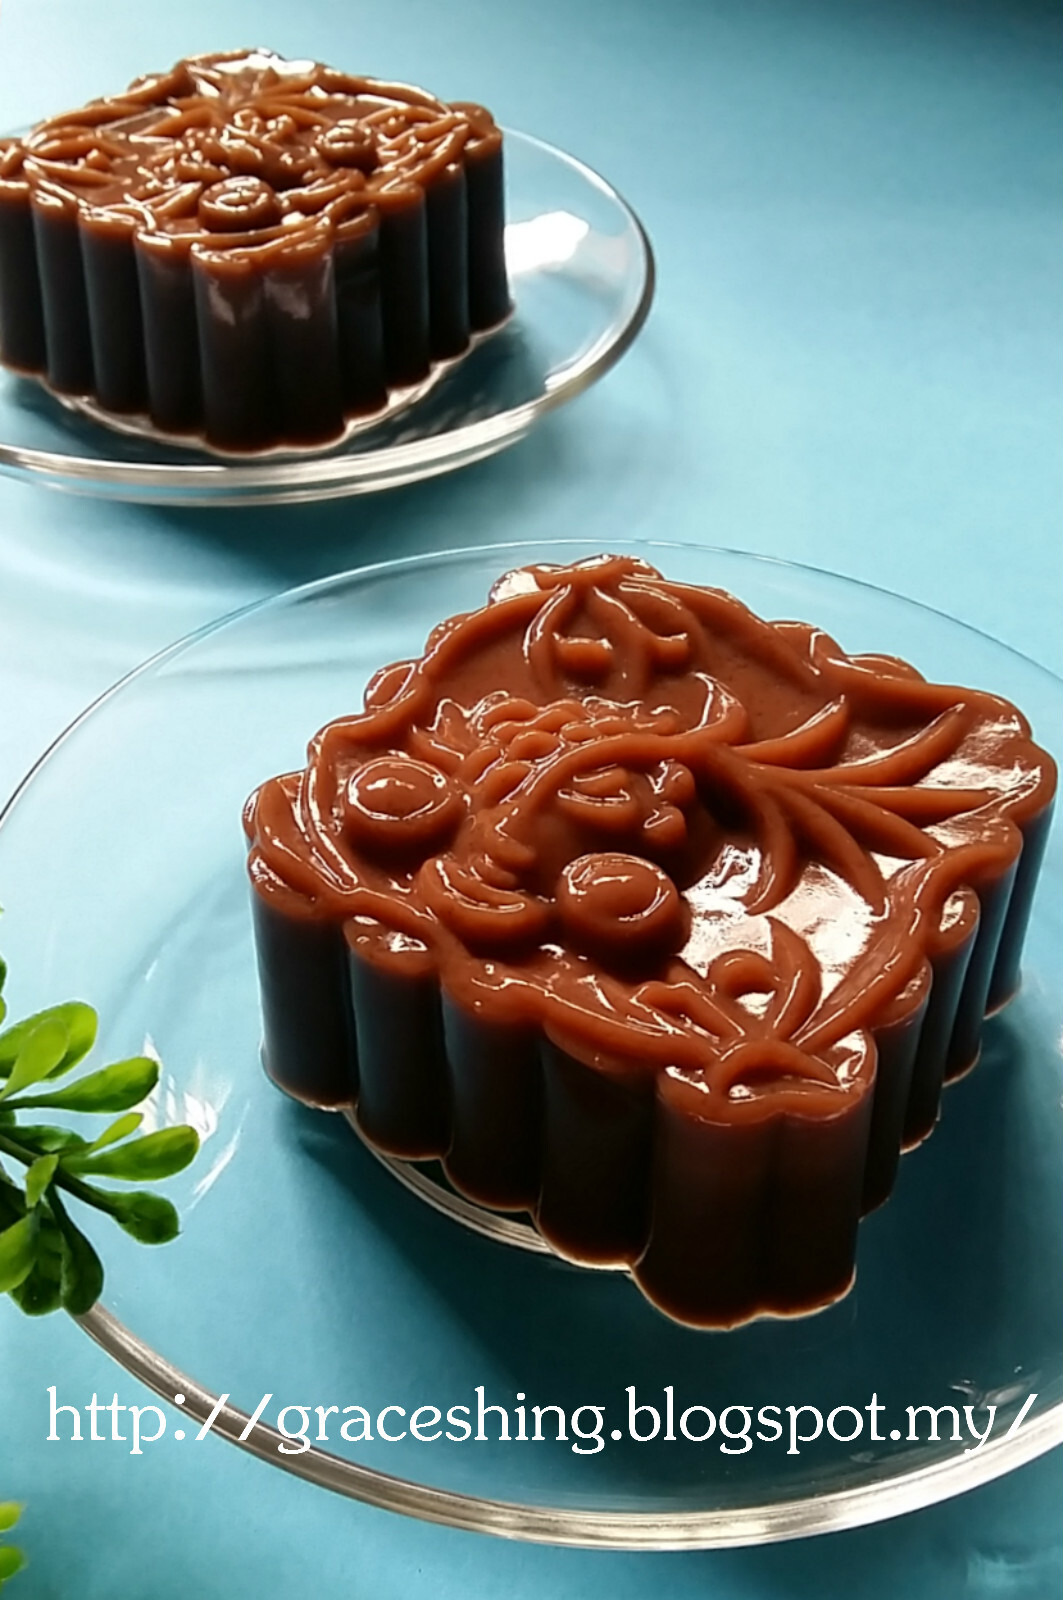 美禄莲蓉燕菜月饼 Milo Lotus Paste Jelly Mooncake